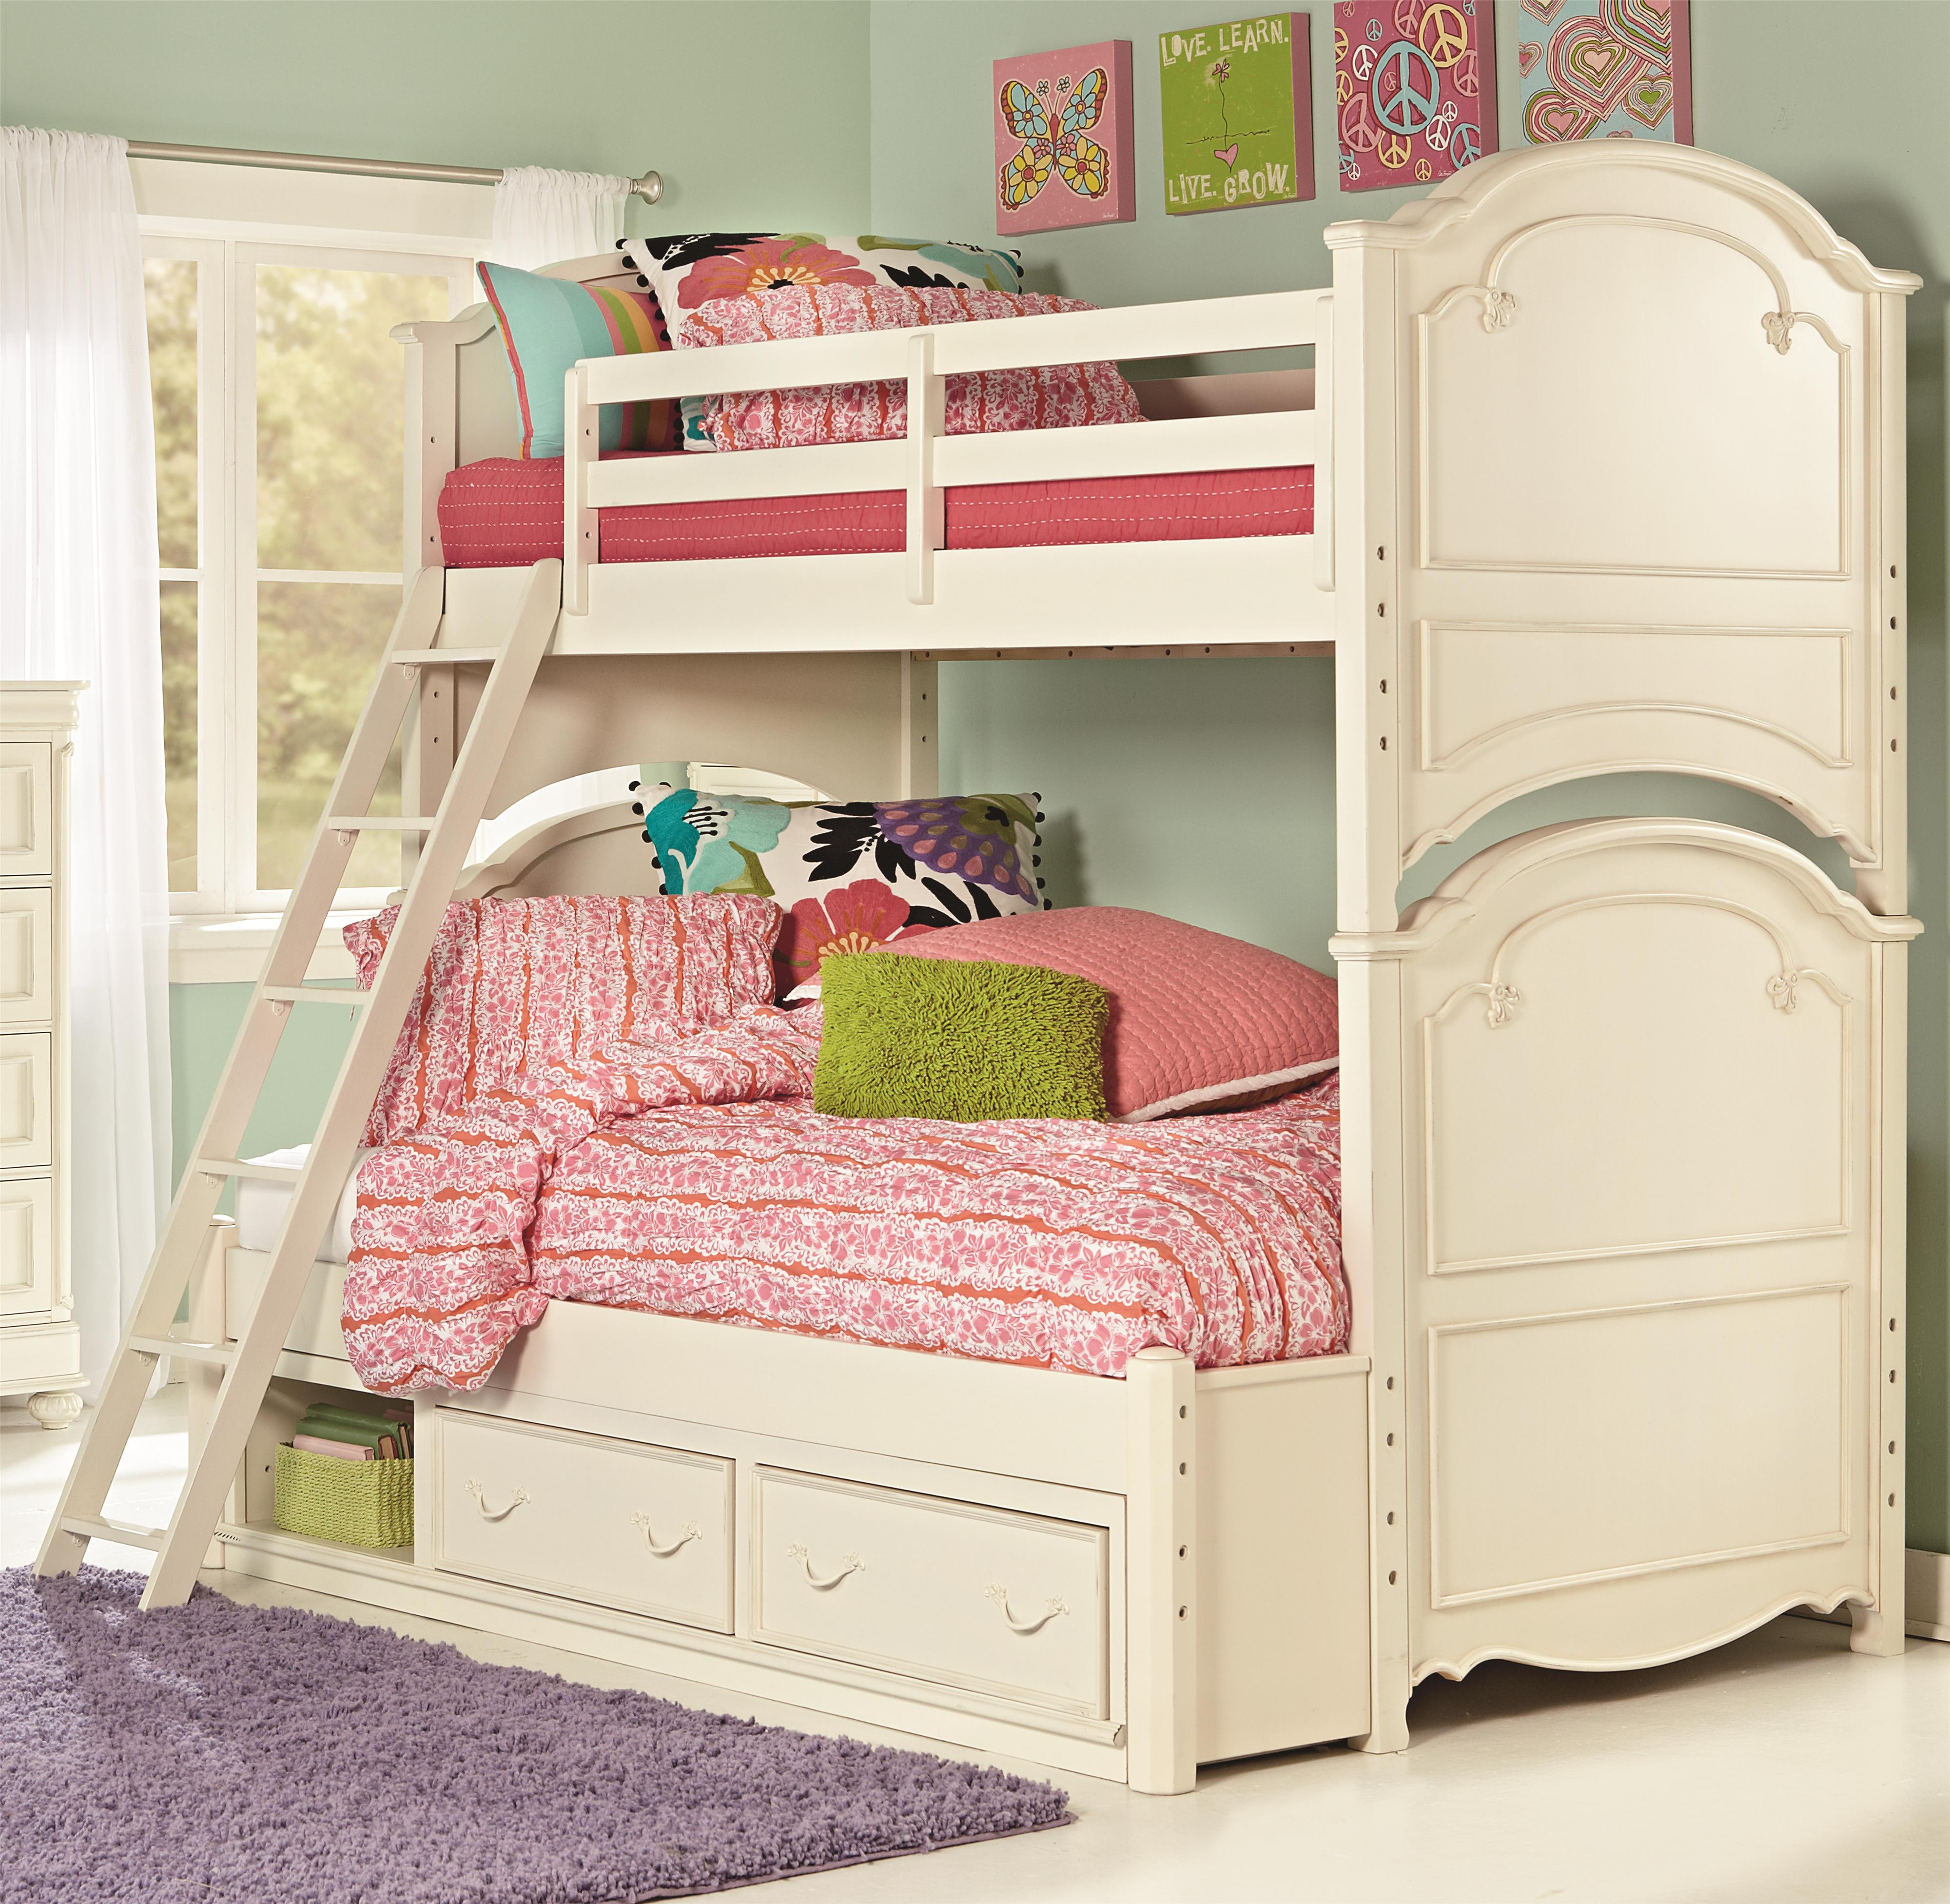 Bedding Storage Charlotte Twin Over Full Bunk Bed With Underbed Storage Unit By Legacy Classic Kids At Olinde S Furniture